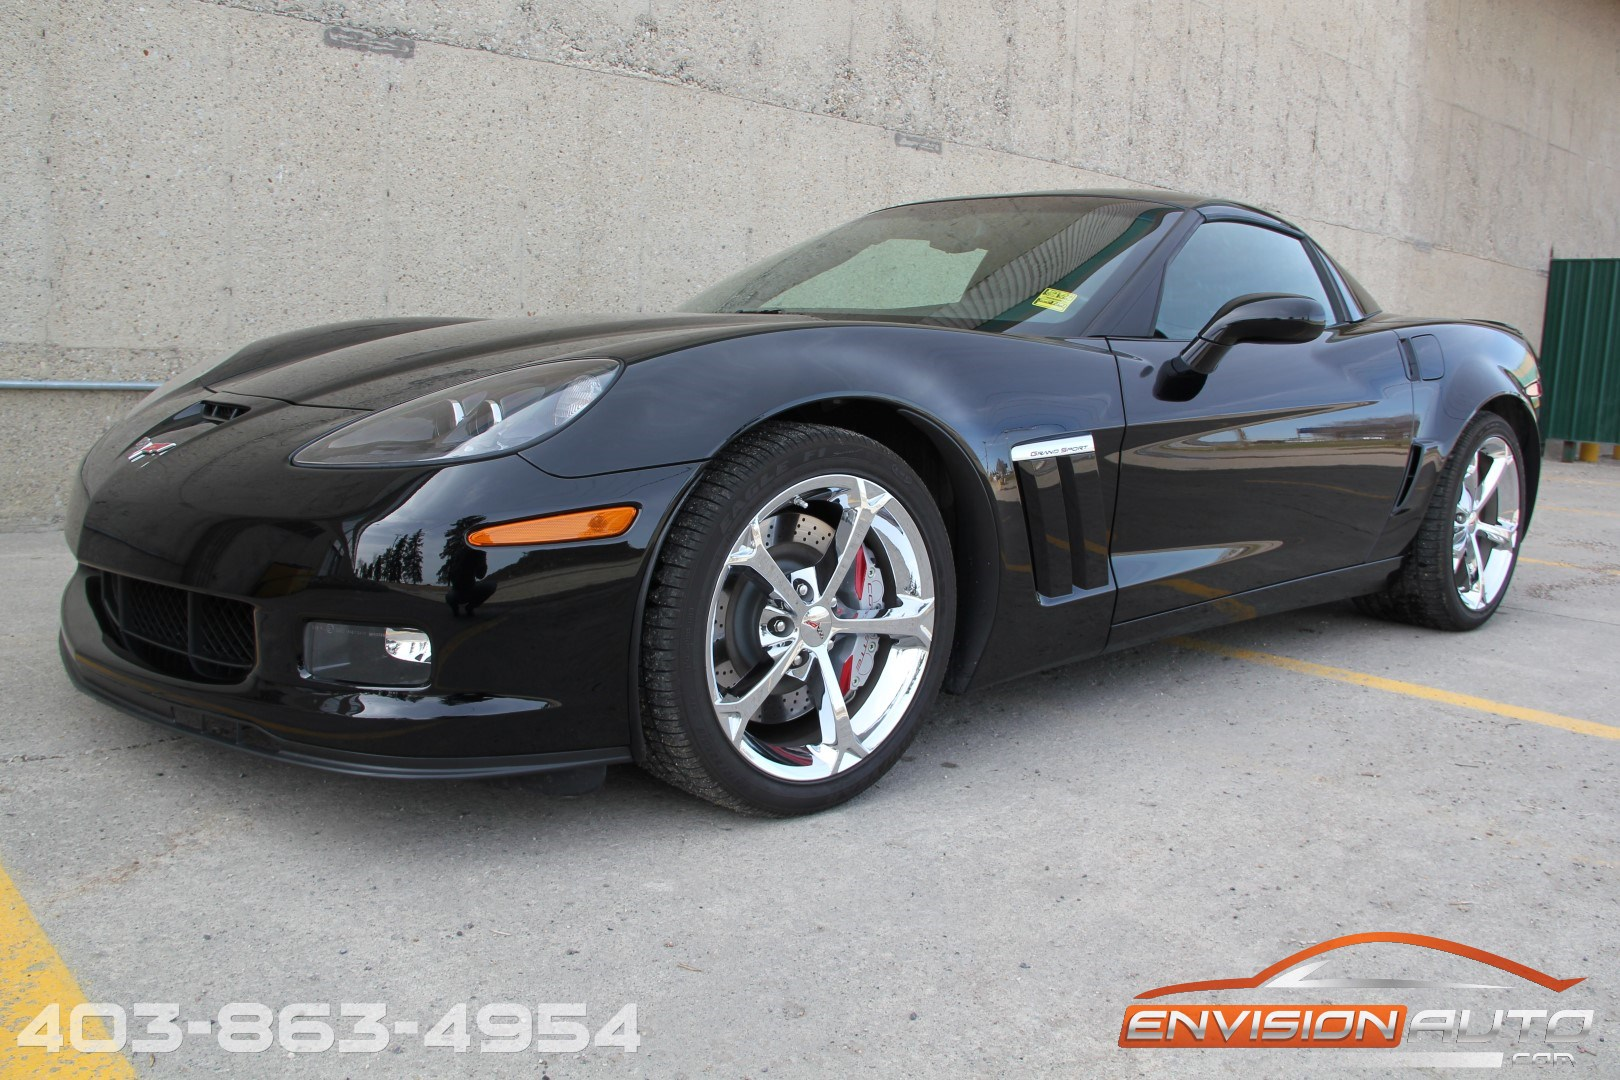 2011 Chevrolet Grand Sport Coupe 2LT Glass Roof Flowmaster 1G1YR2DWXB5107557 1 - 2011 Chevrolet Corvette Grand Sport Coupe 2lt At